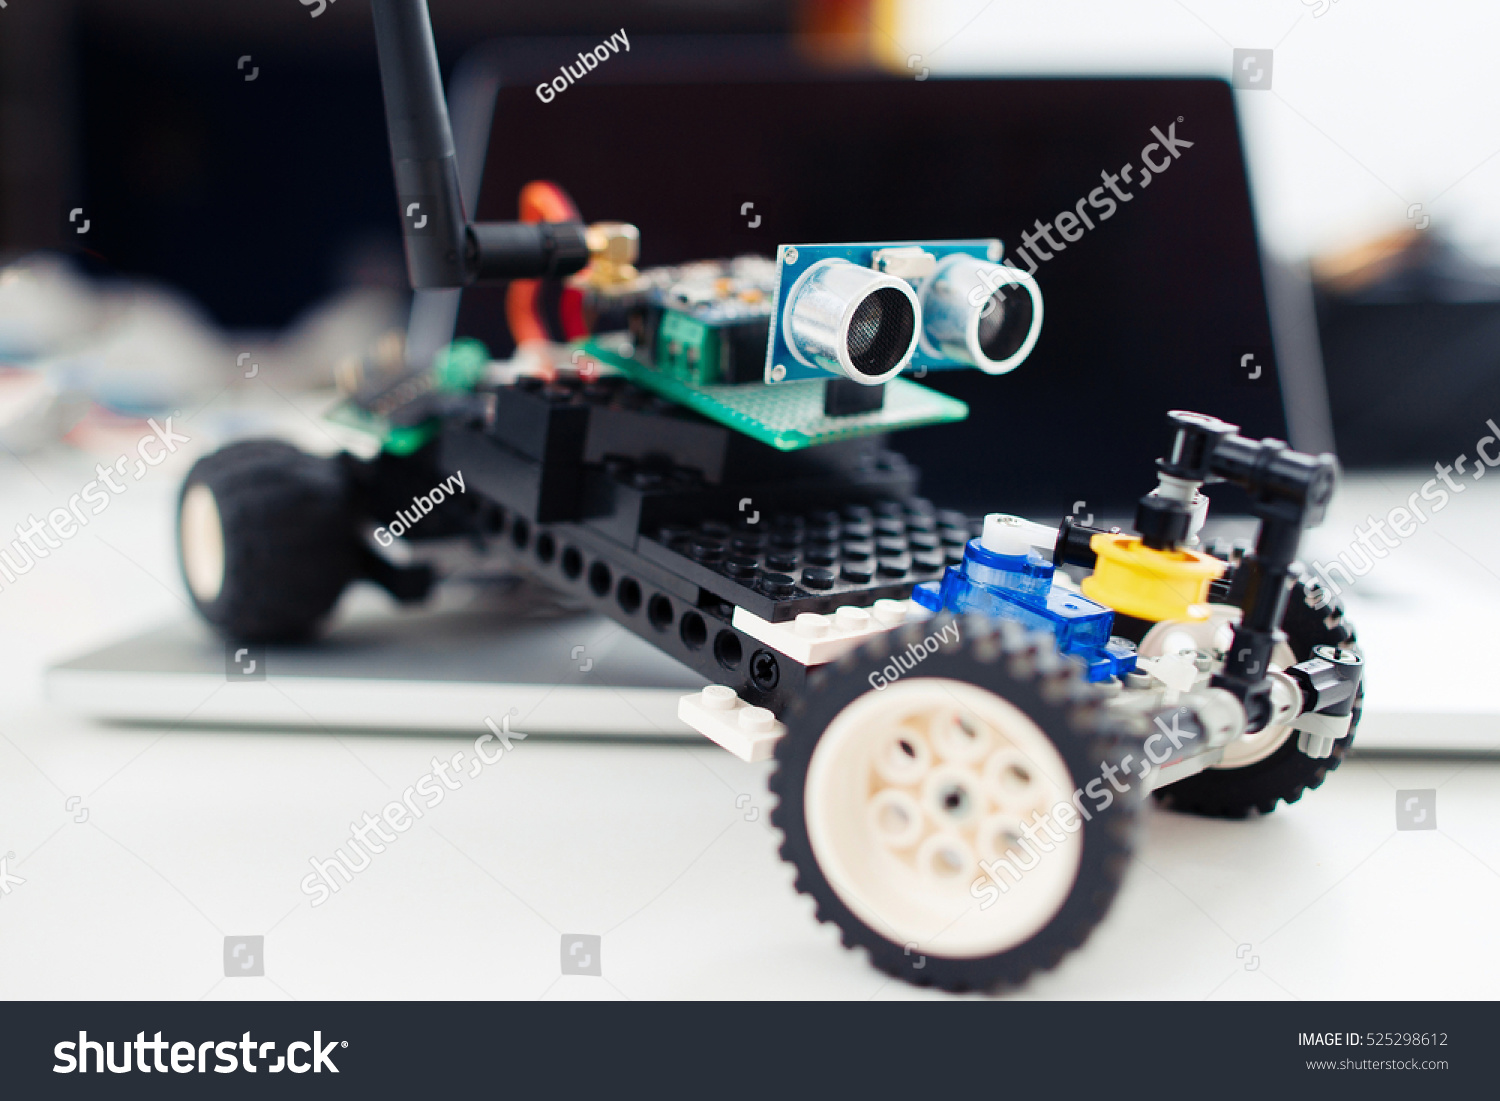 Closeup Little Handmade Toy Car Children Stock Photo Edit Now Remote Controlled Circuit With Transceiver Module Close Up Of Auto Made From Construction And Electronic